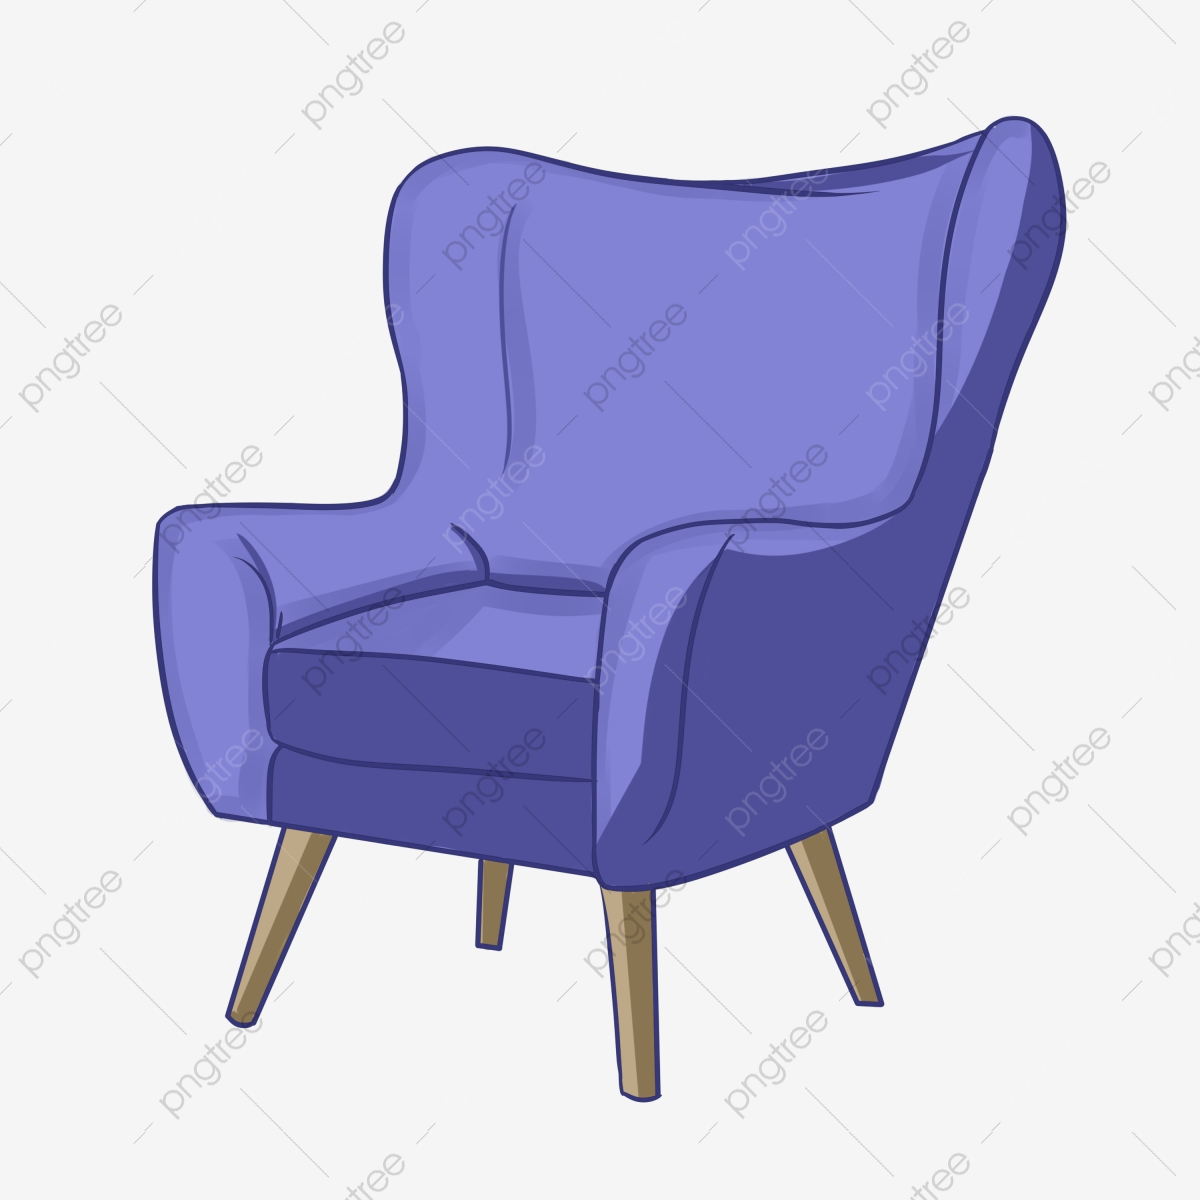 Sofa Chair Cartoon Furniture Furniture Chair Sofa Png